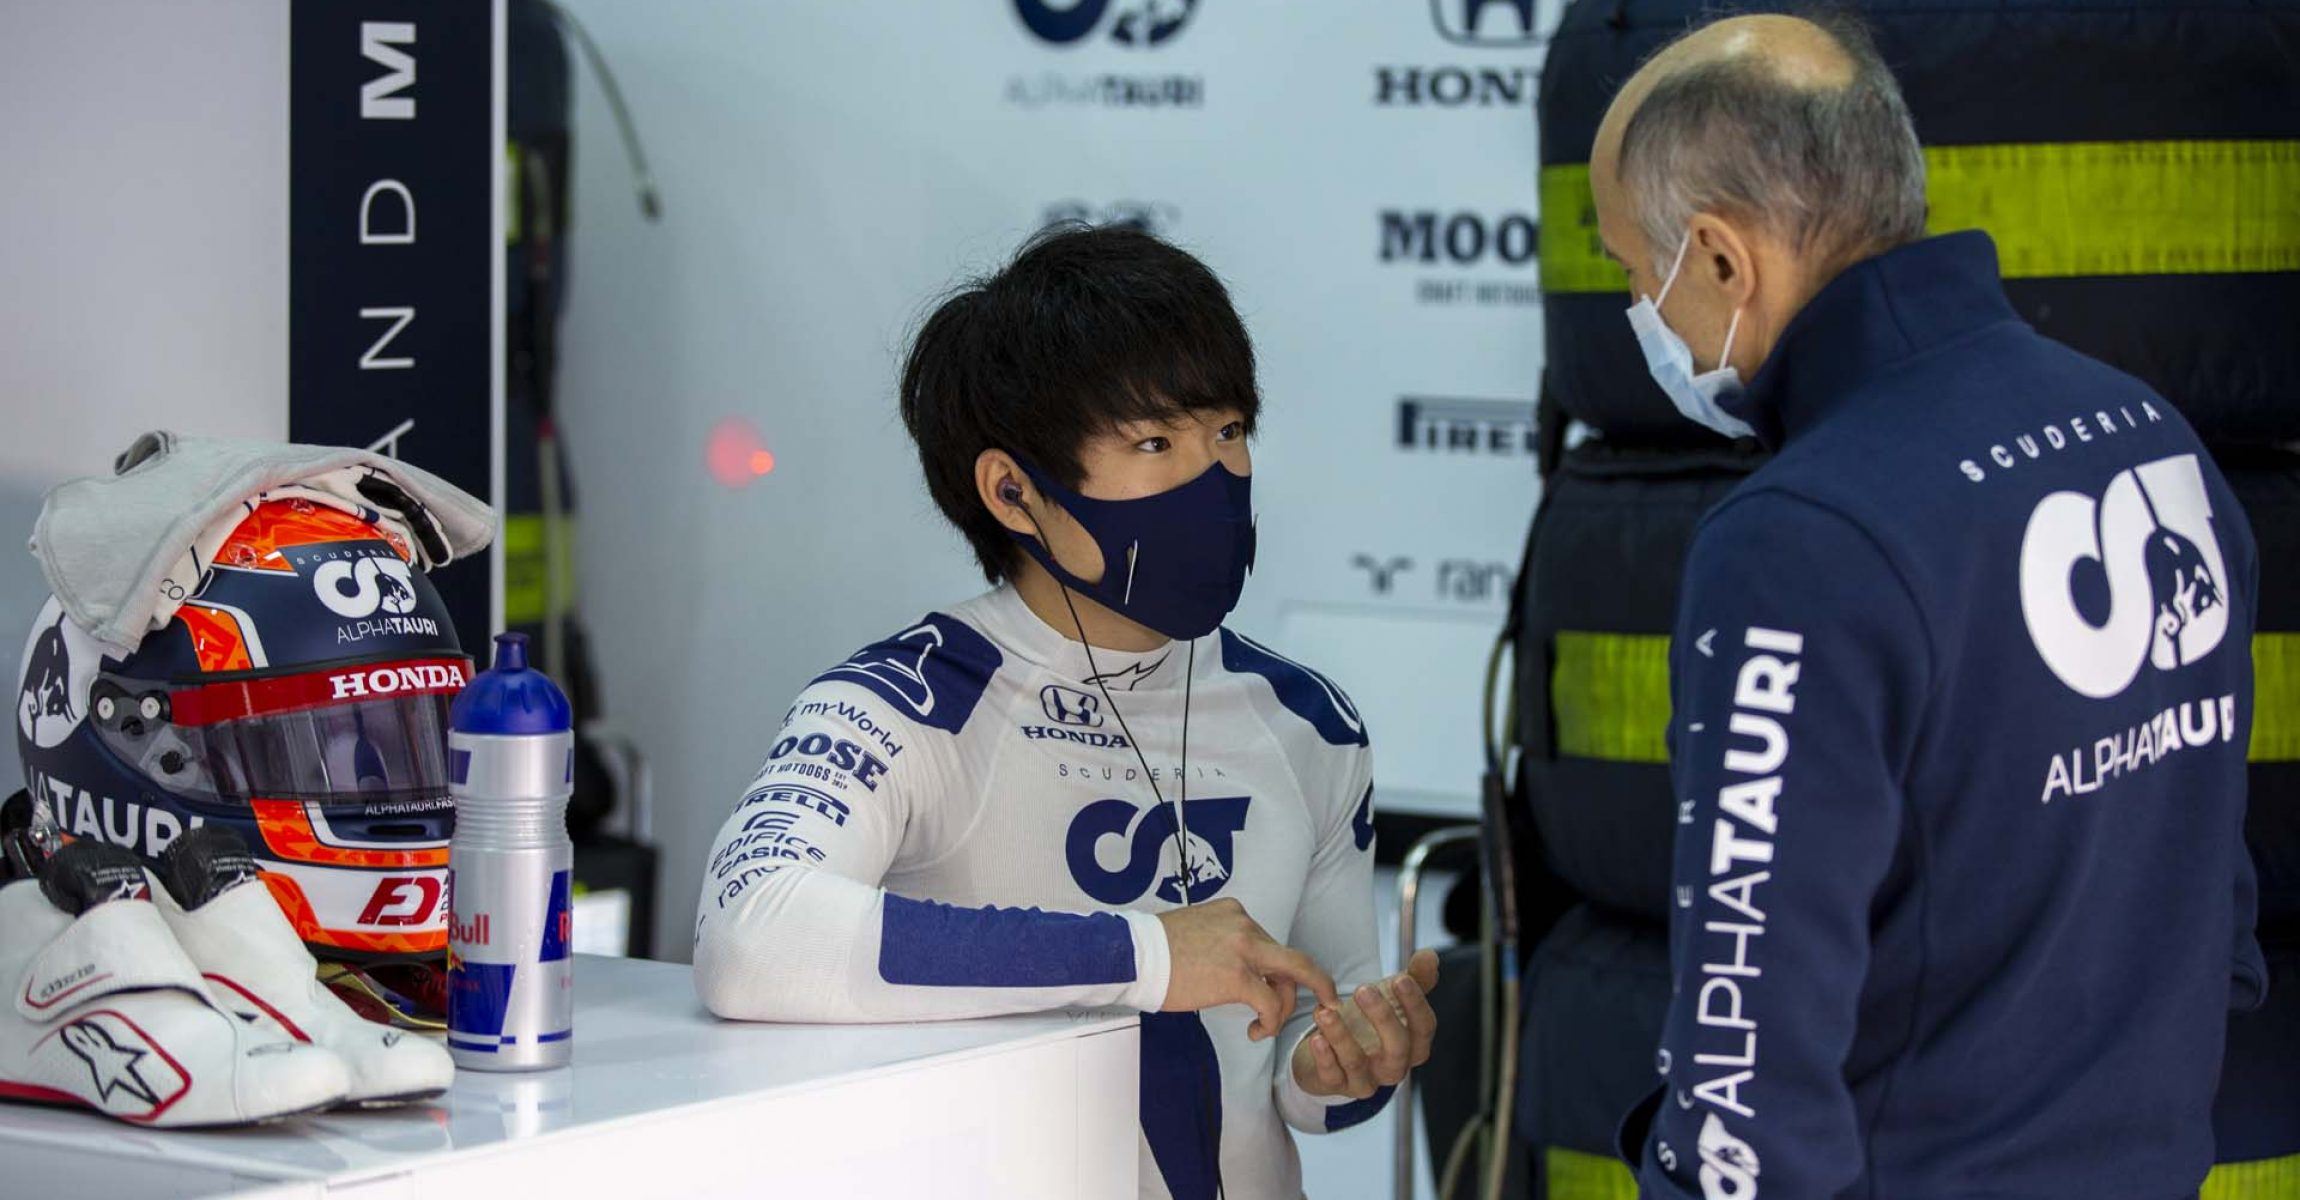 IMOLA, ITALY - NOVEMBER 04: Yuki Tsunoda of Japan completes his first F1 test at Autodromo Enzo e Dino Ferrari on November 04, 2020 in Imola, Italy. (Photo by Josh Kruse/Scuderia AlphaTauri) // Josh Kruse / Scuderia AlphaTauri / Red Bull Content Pool // SI202011040567 // Usage for editorial use only //